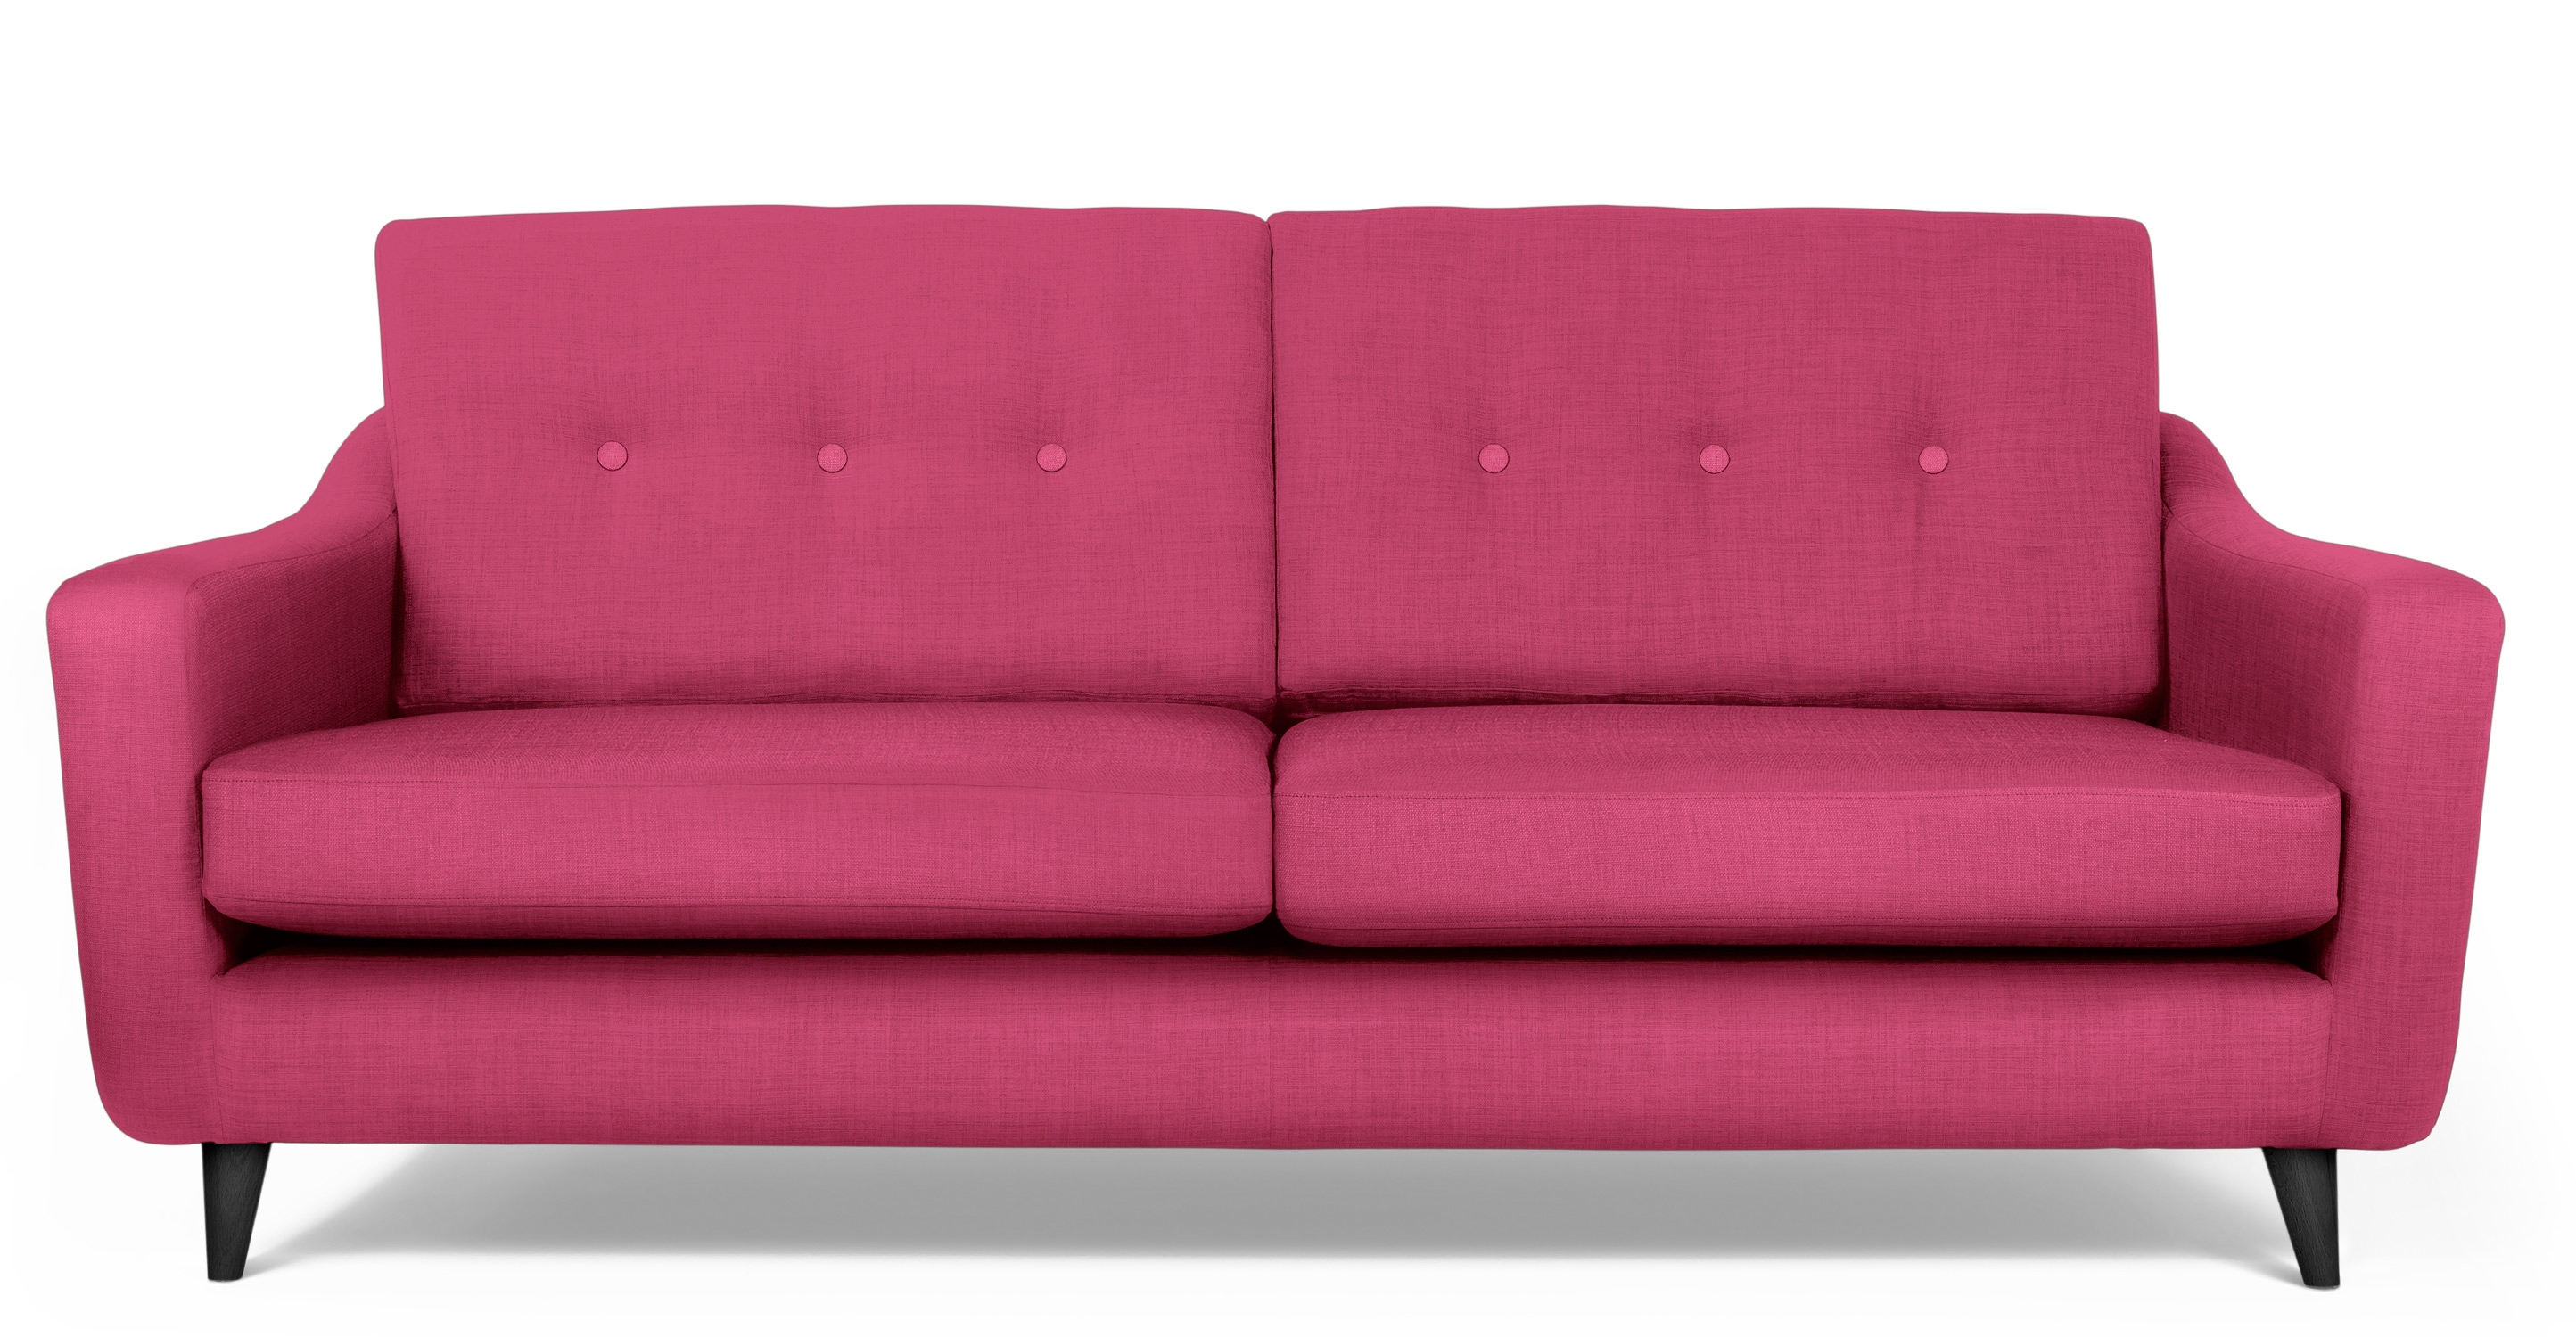 Sofa Pink Costway Pink Kids Sofa Armrest Chair Couch